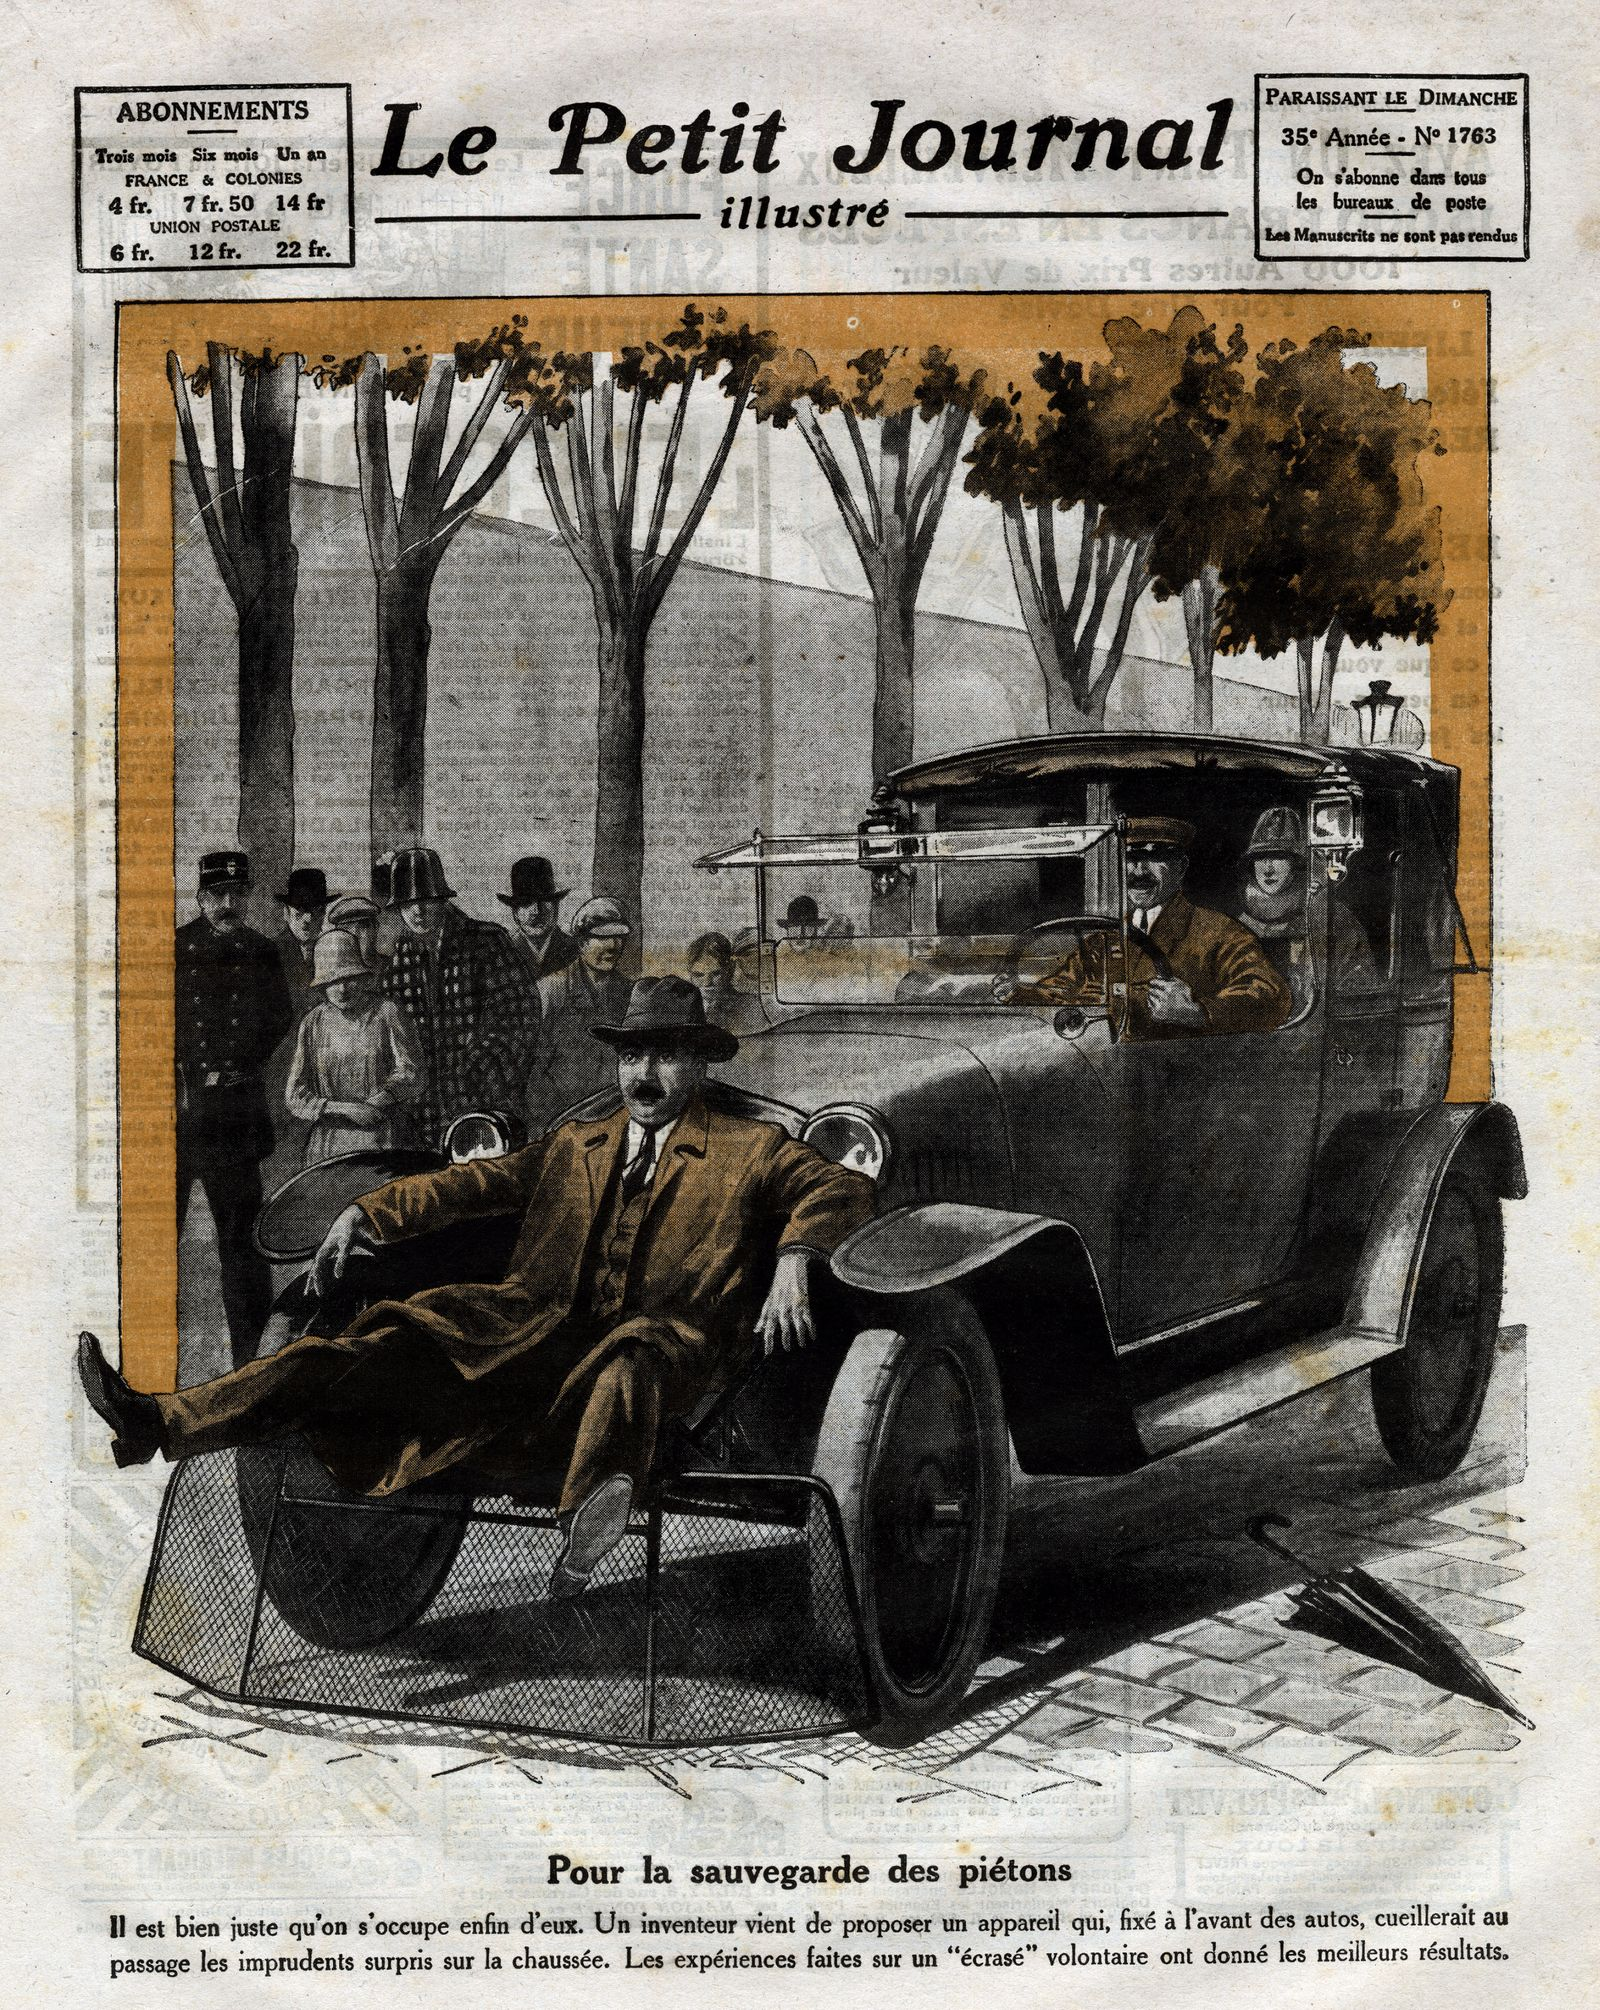 Pedestrian Safety, Invention constiting of a large metal basket fixed to the front bumper of a car, designed to collect careless pedestrians and prevent them from getting hurt on the road, Frontpage of French newspaper Le Petit Journal Illustre 1924,